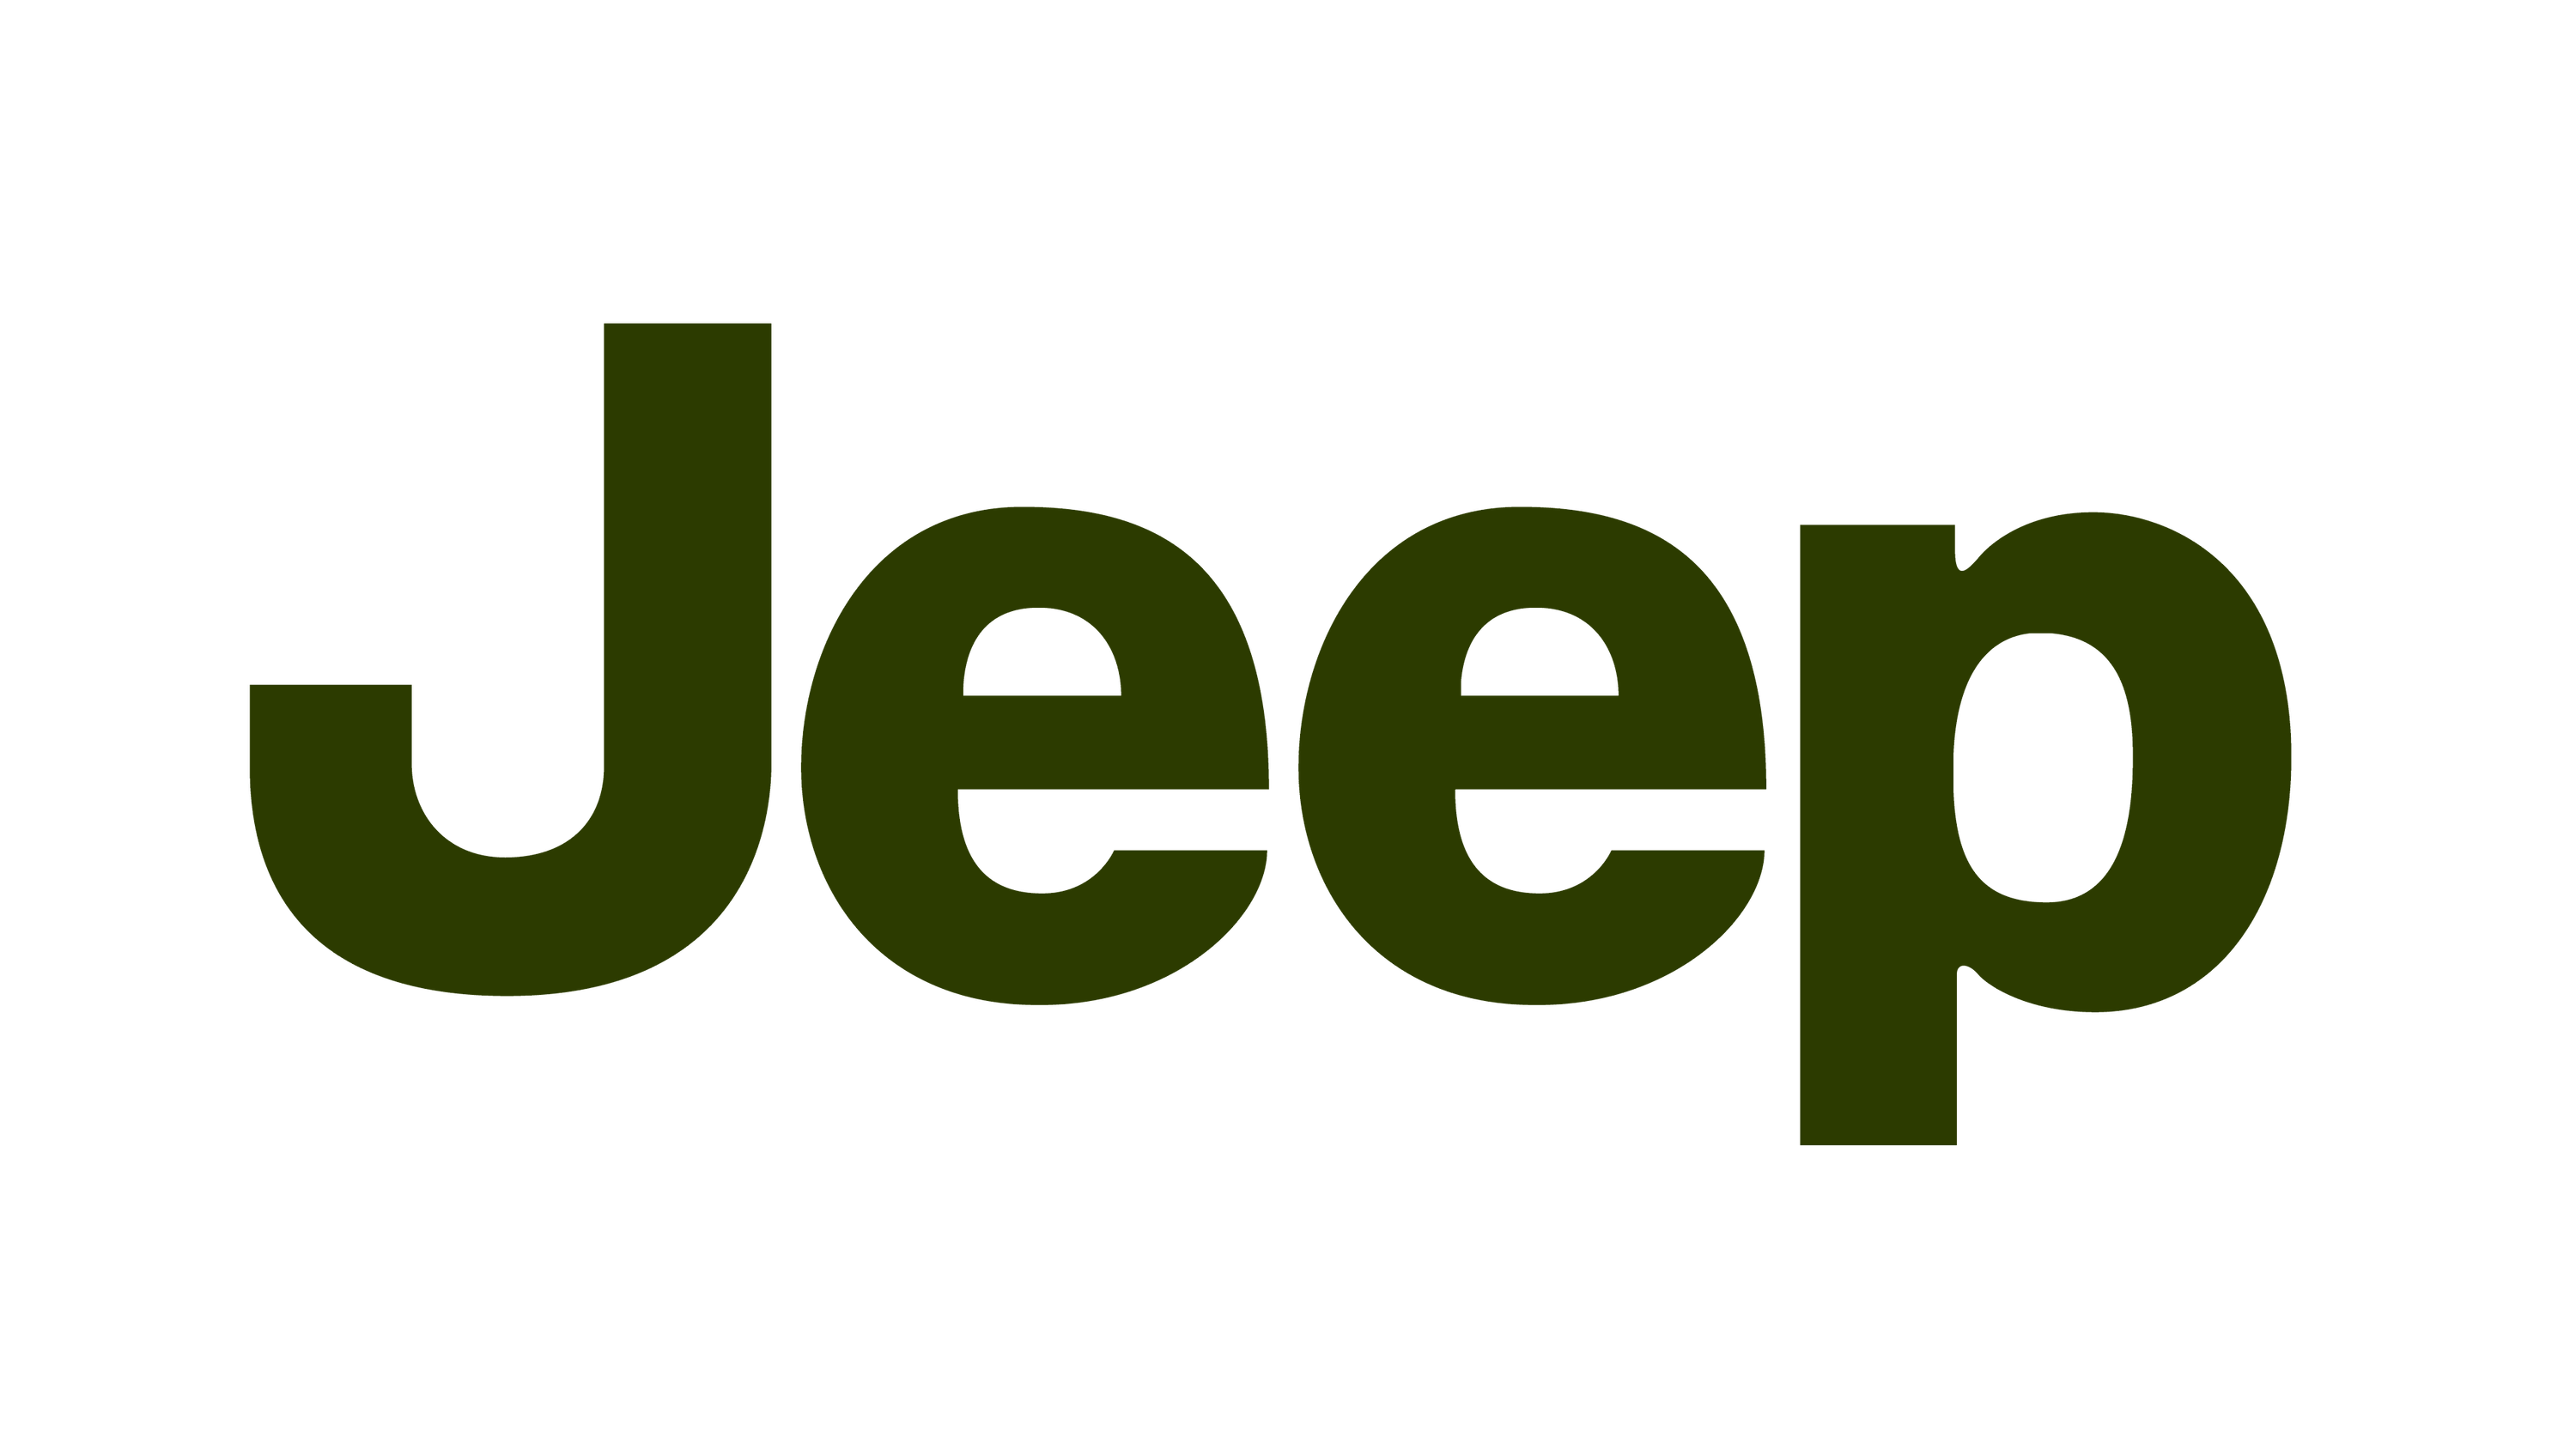 Car logo clipart svg free library Car Logo Jeep transparent PNG - StickPNG svg free library